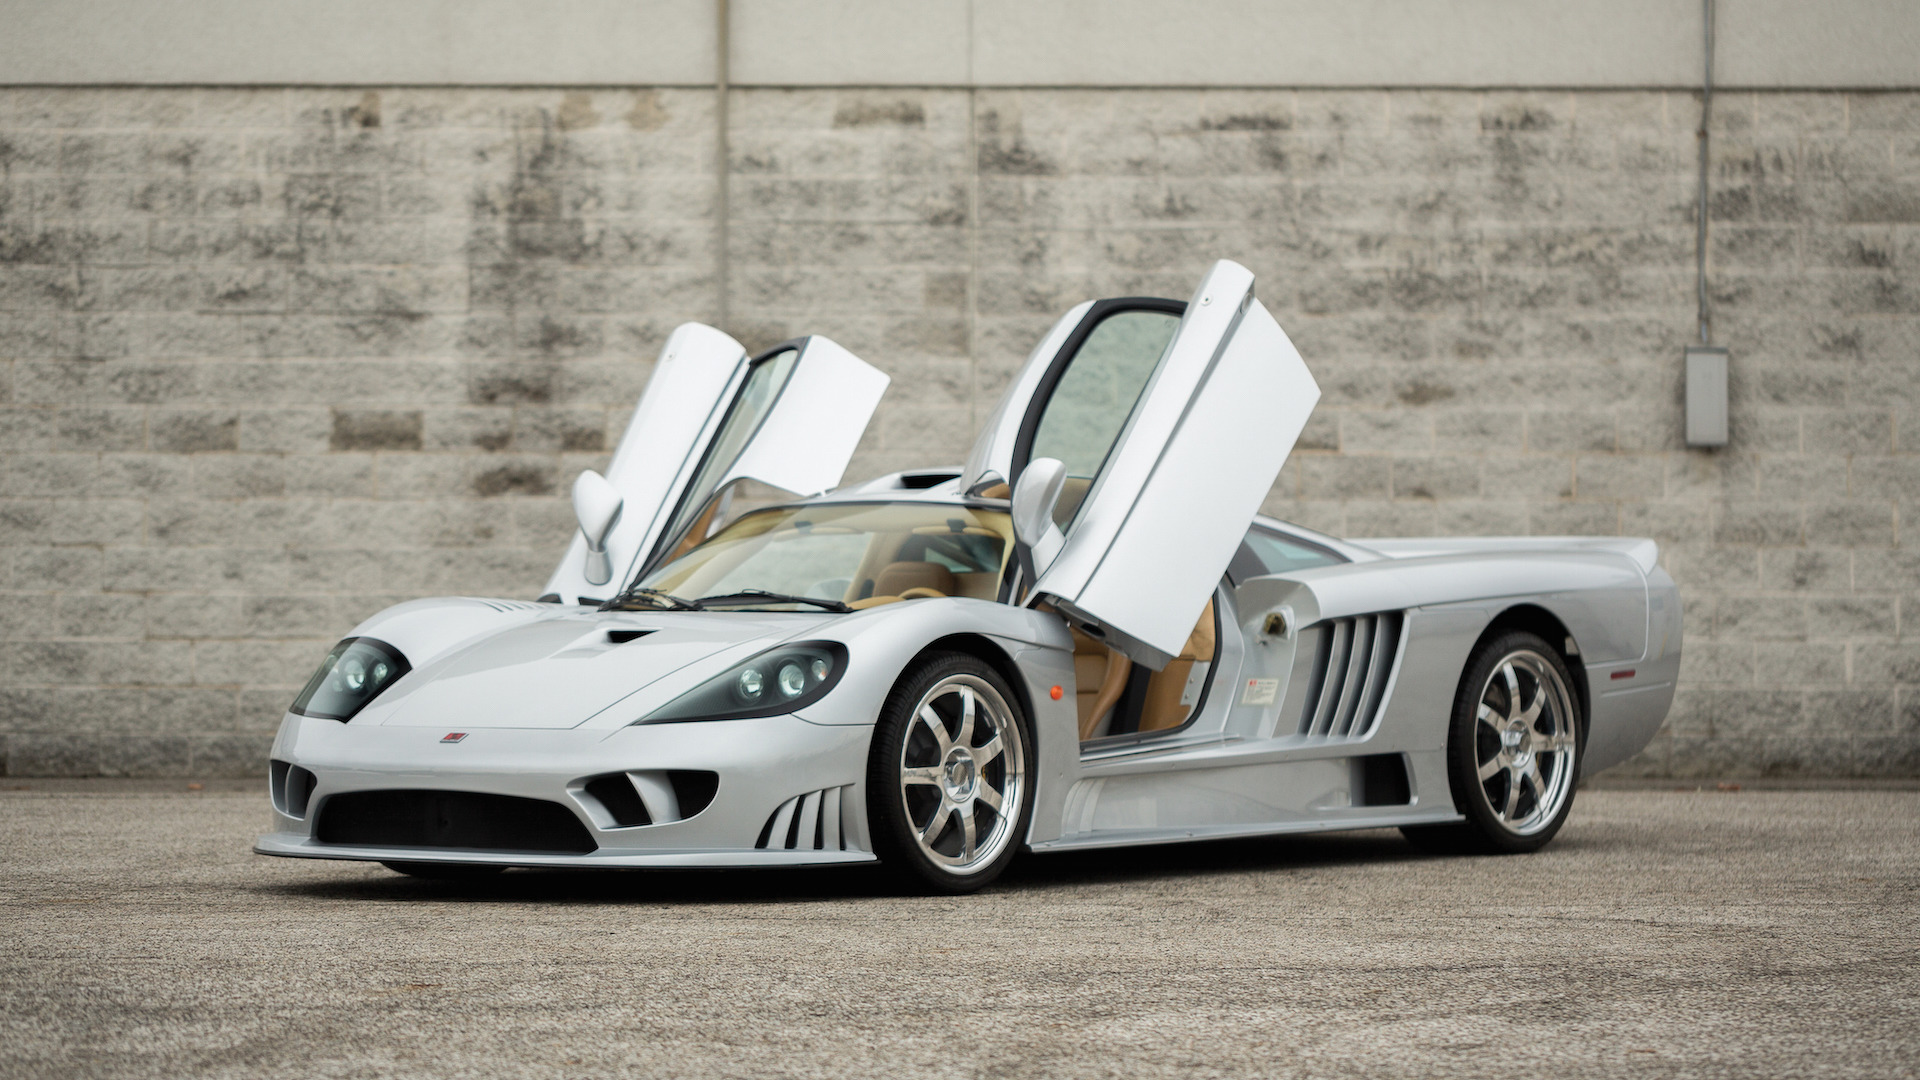 One-Of-A-Kind Saleen S7 Is Looking For A New Owner - autoevolution